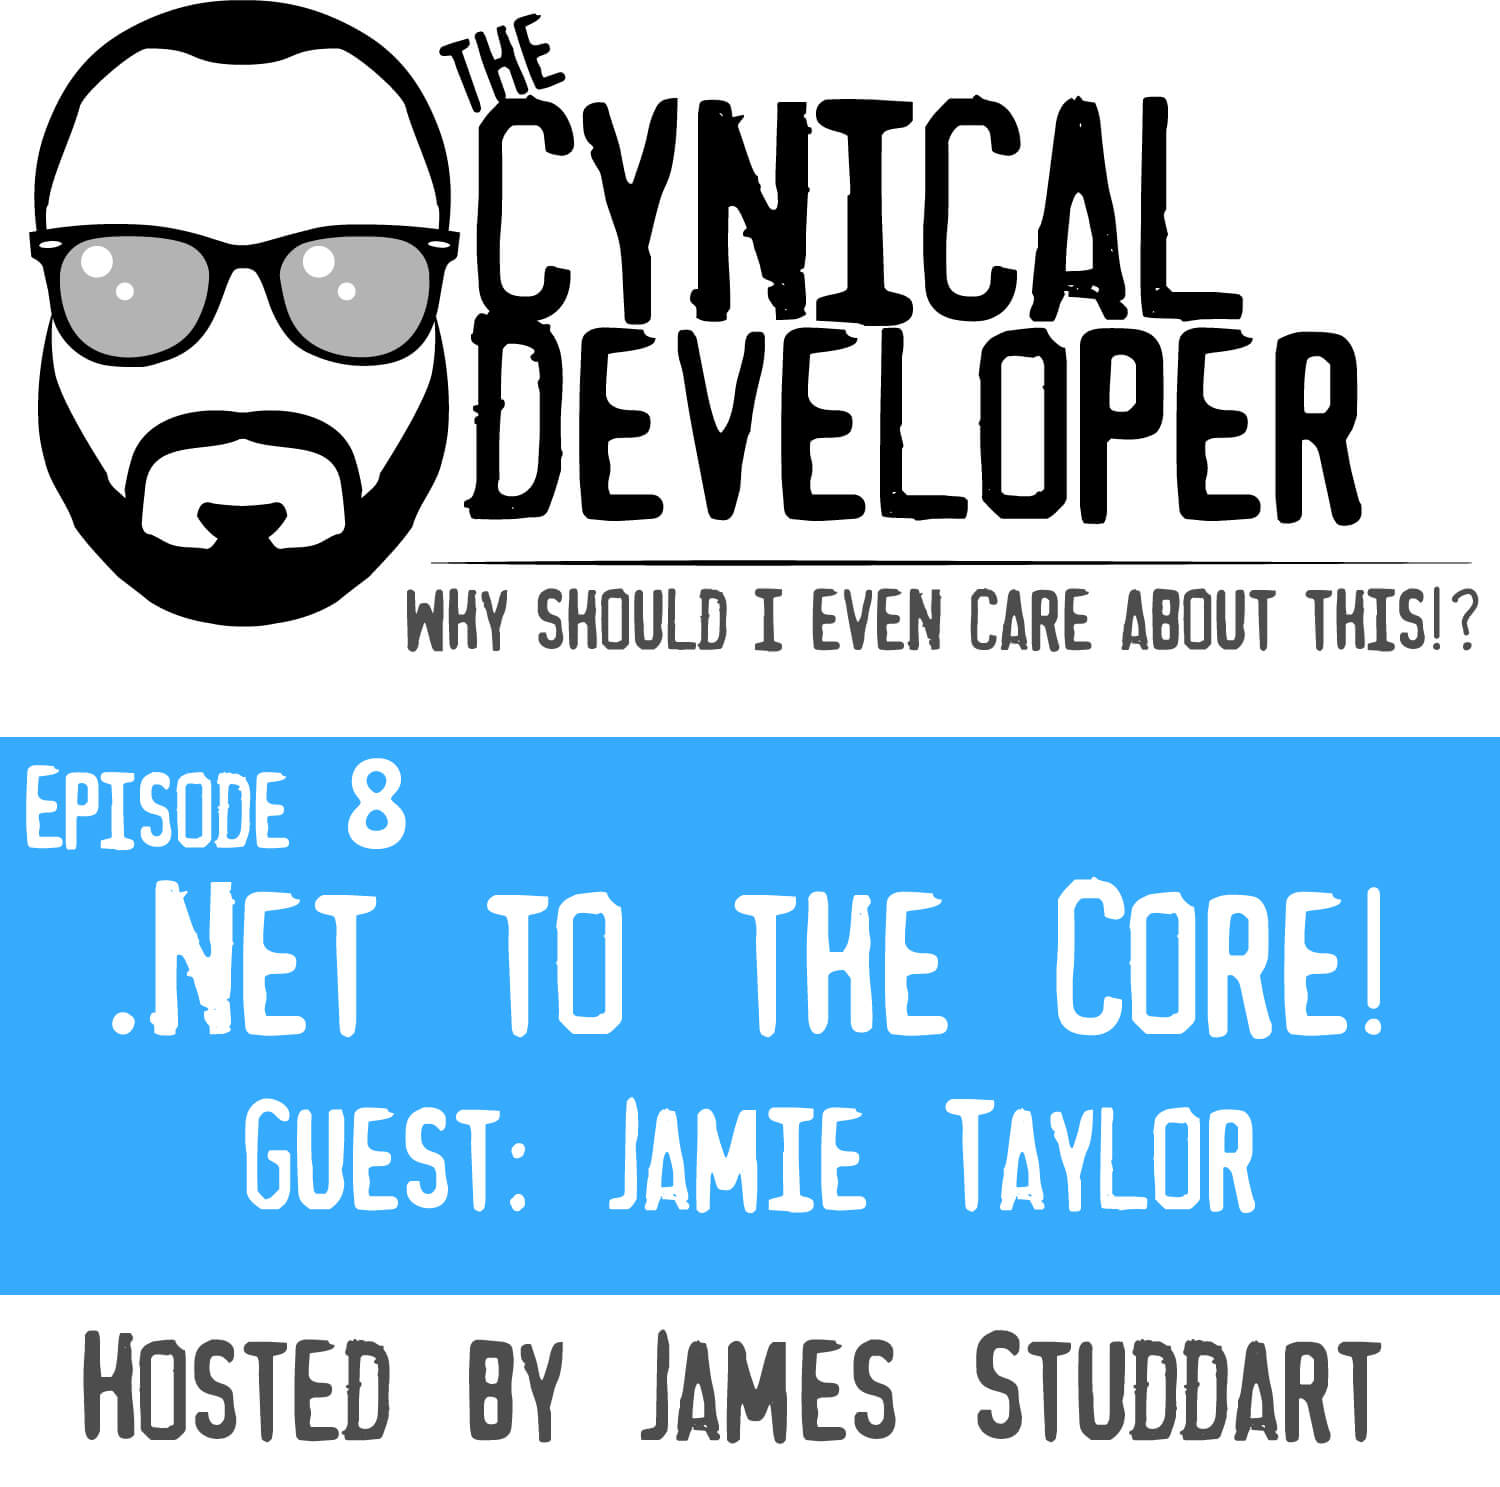 Episode 8 - .Net to the Core!